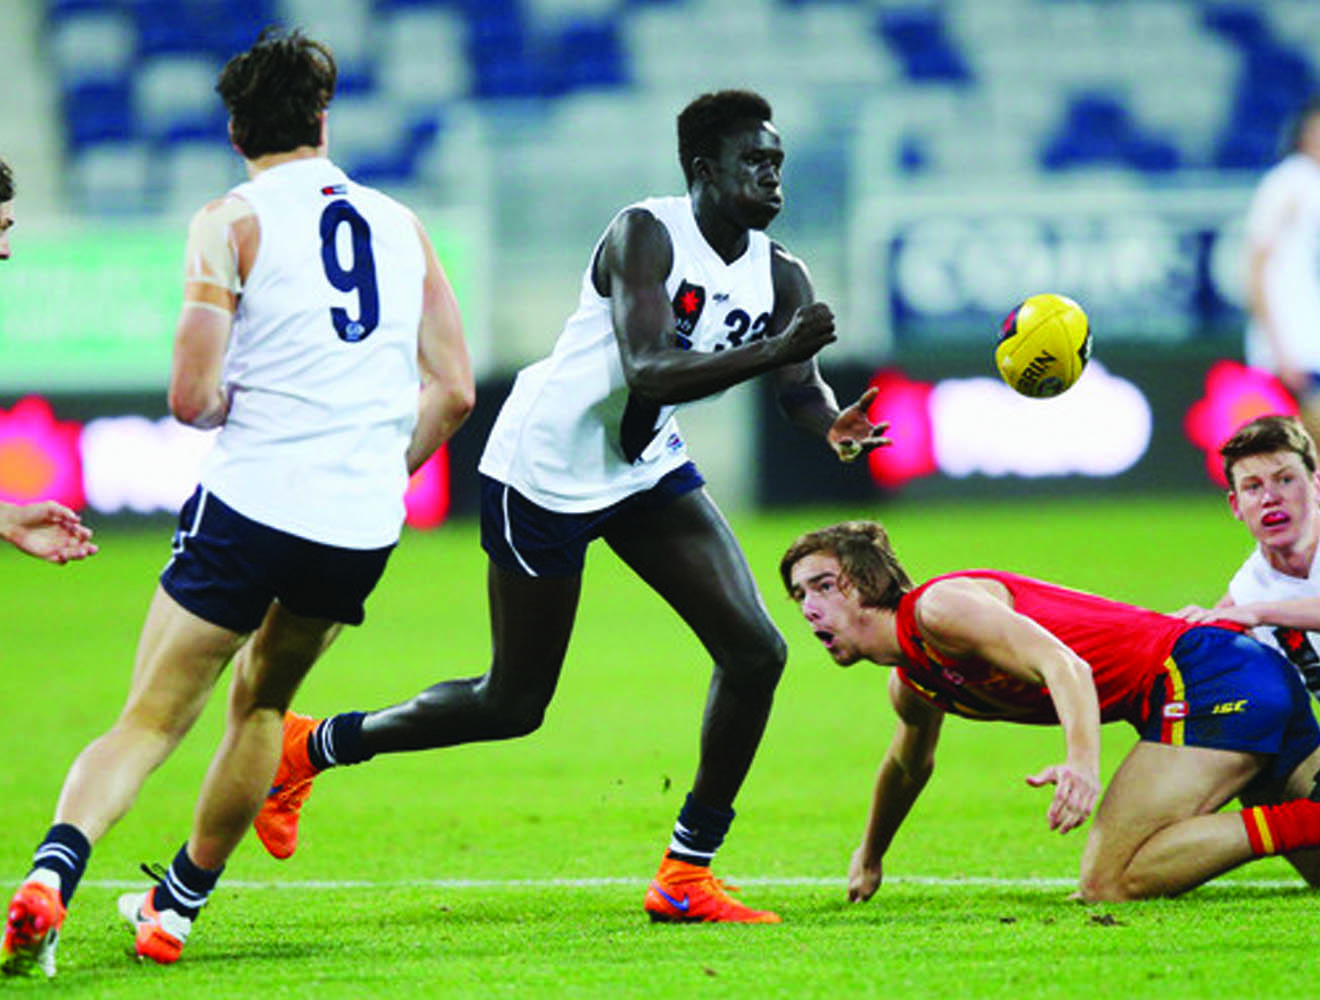 Gun multicultural prospects join AFL Academy